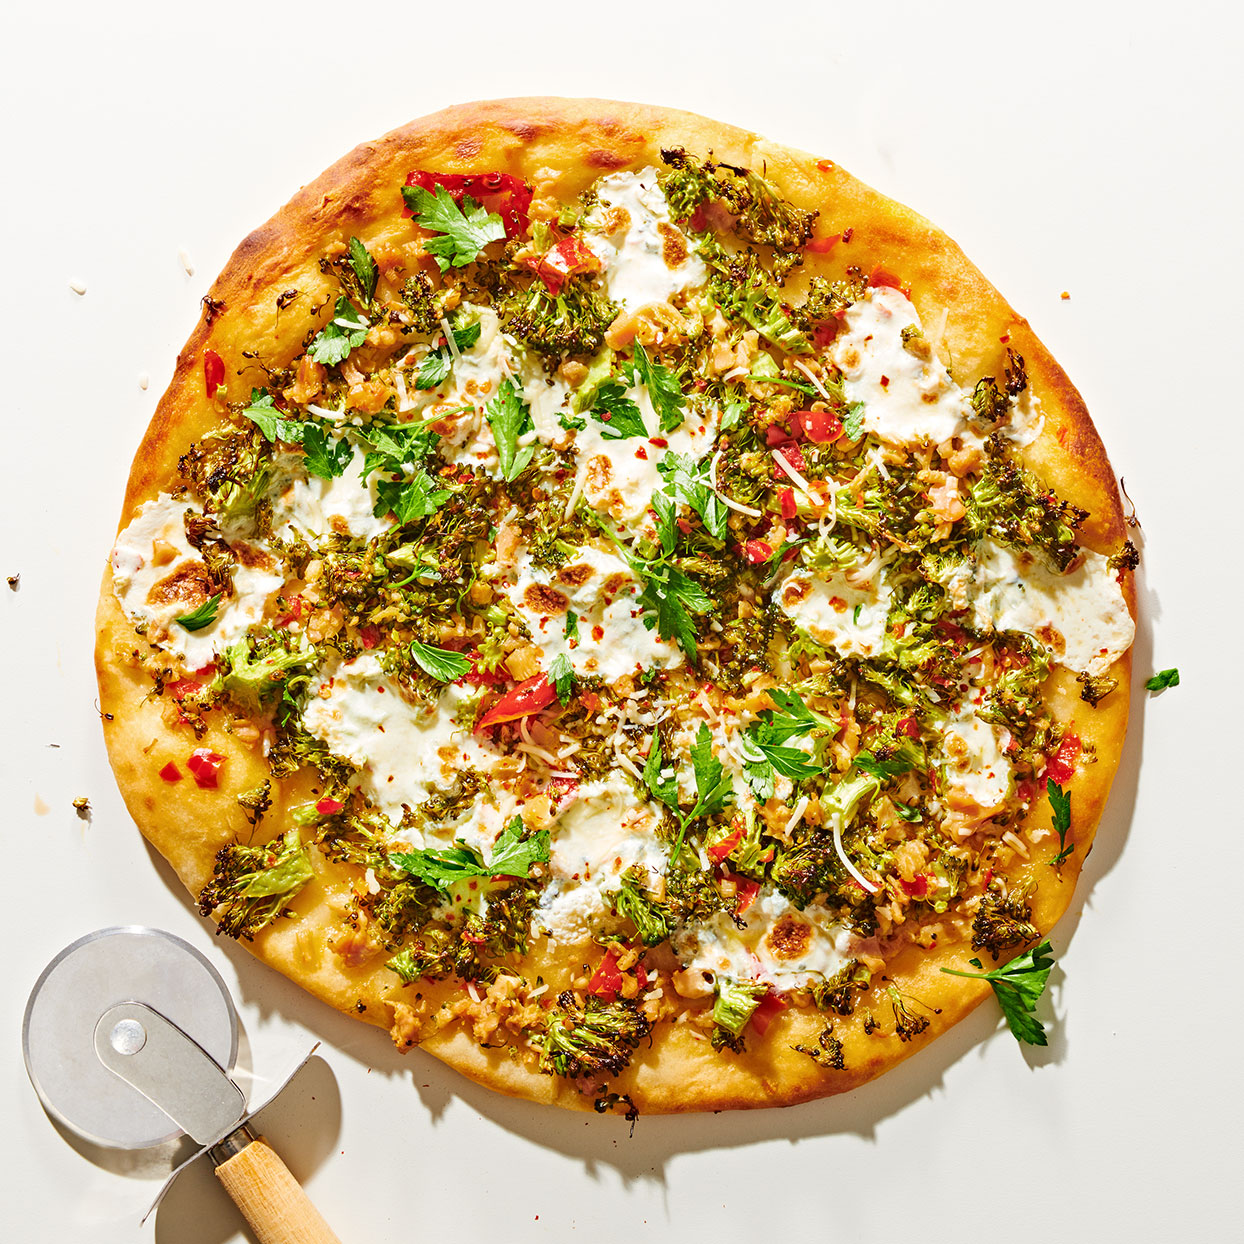 This recipe unites two East Coast favorites: white clam pizza from New Haven and the spicy fra diavolo sauce made famous in New York. Jarred Calabrian peppers heat it up and two-ingredient pizza dough makes it easy.